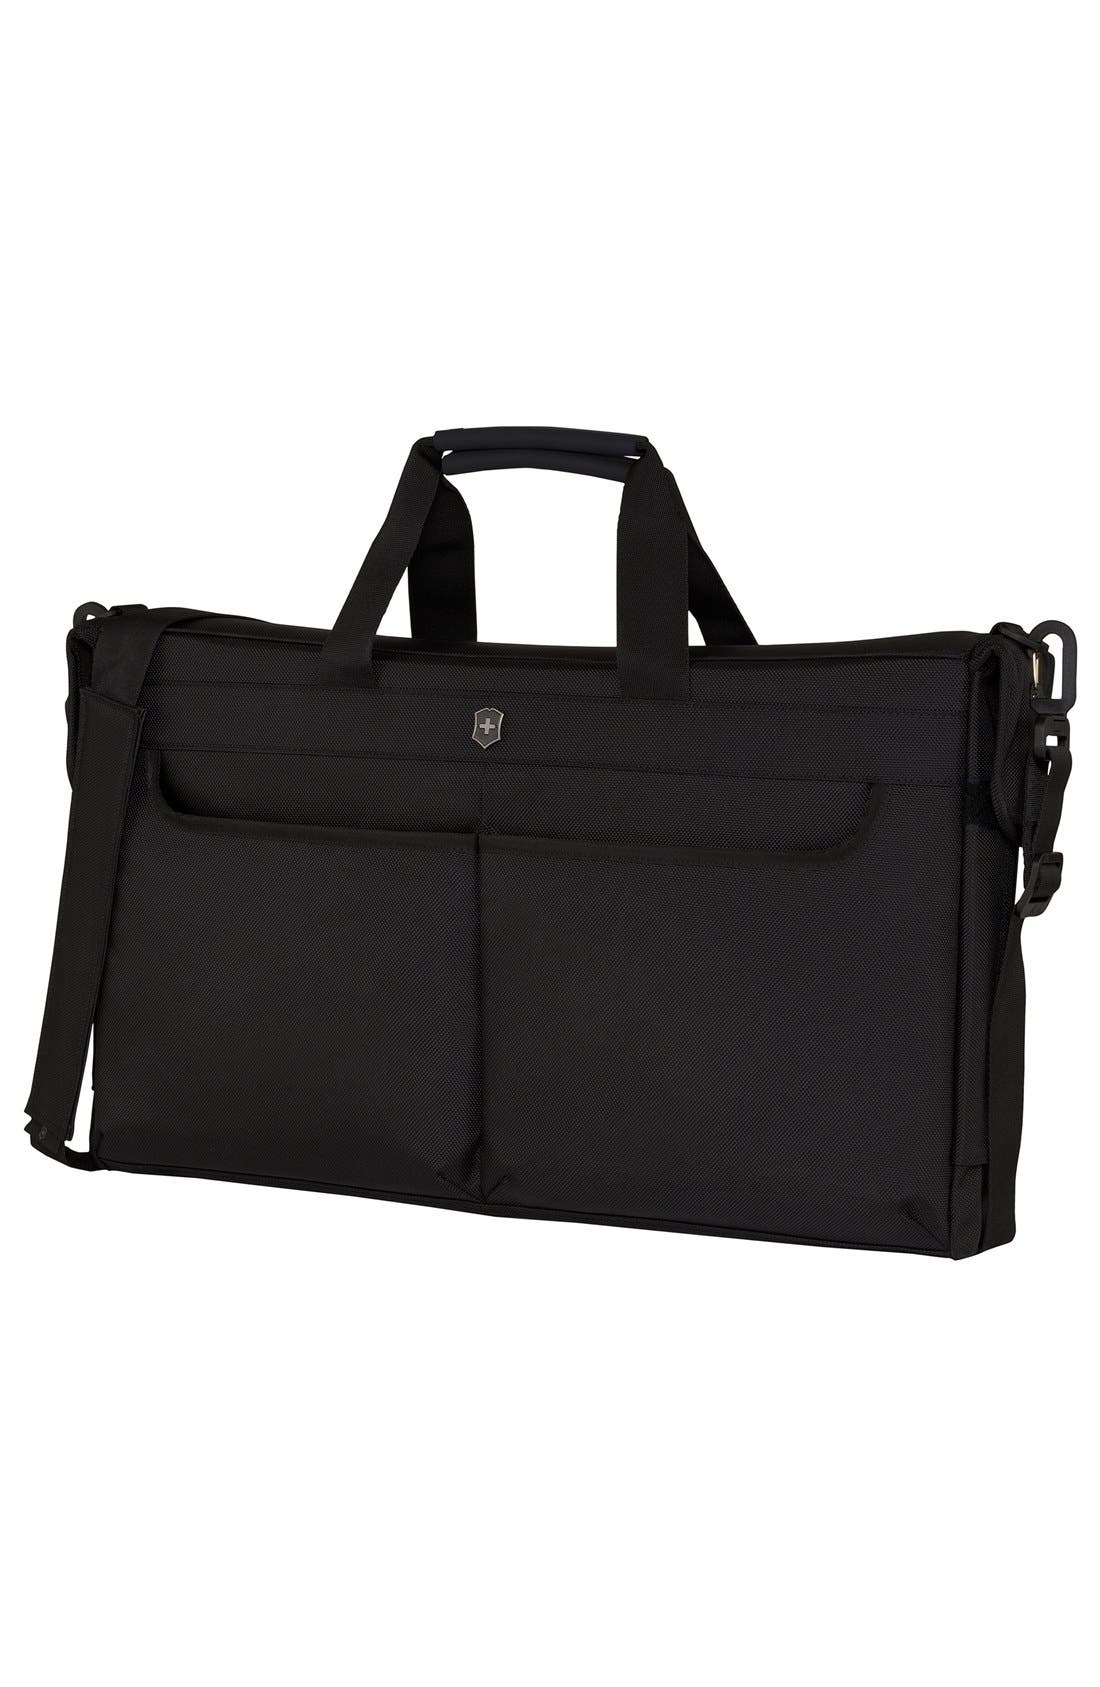 WT 5.0 - Porter Garment Bag,                         Main,                         color, 001